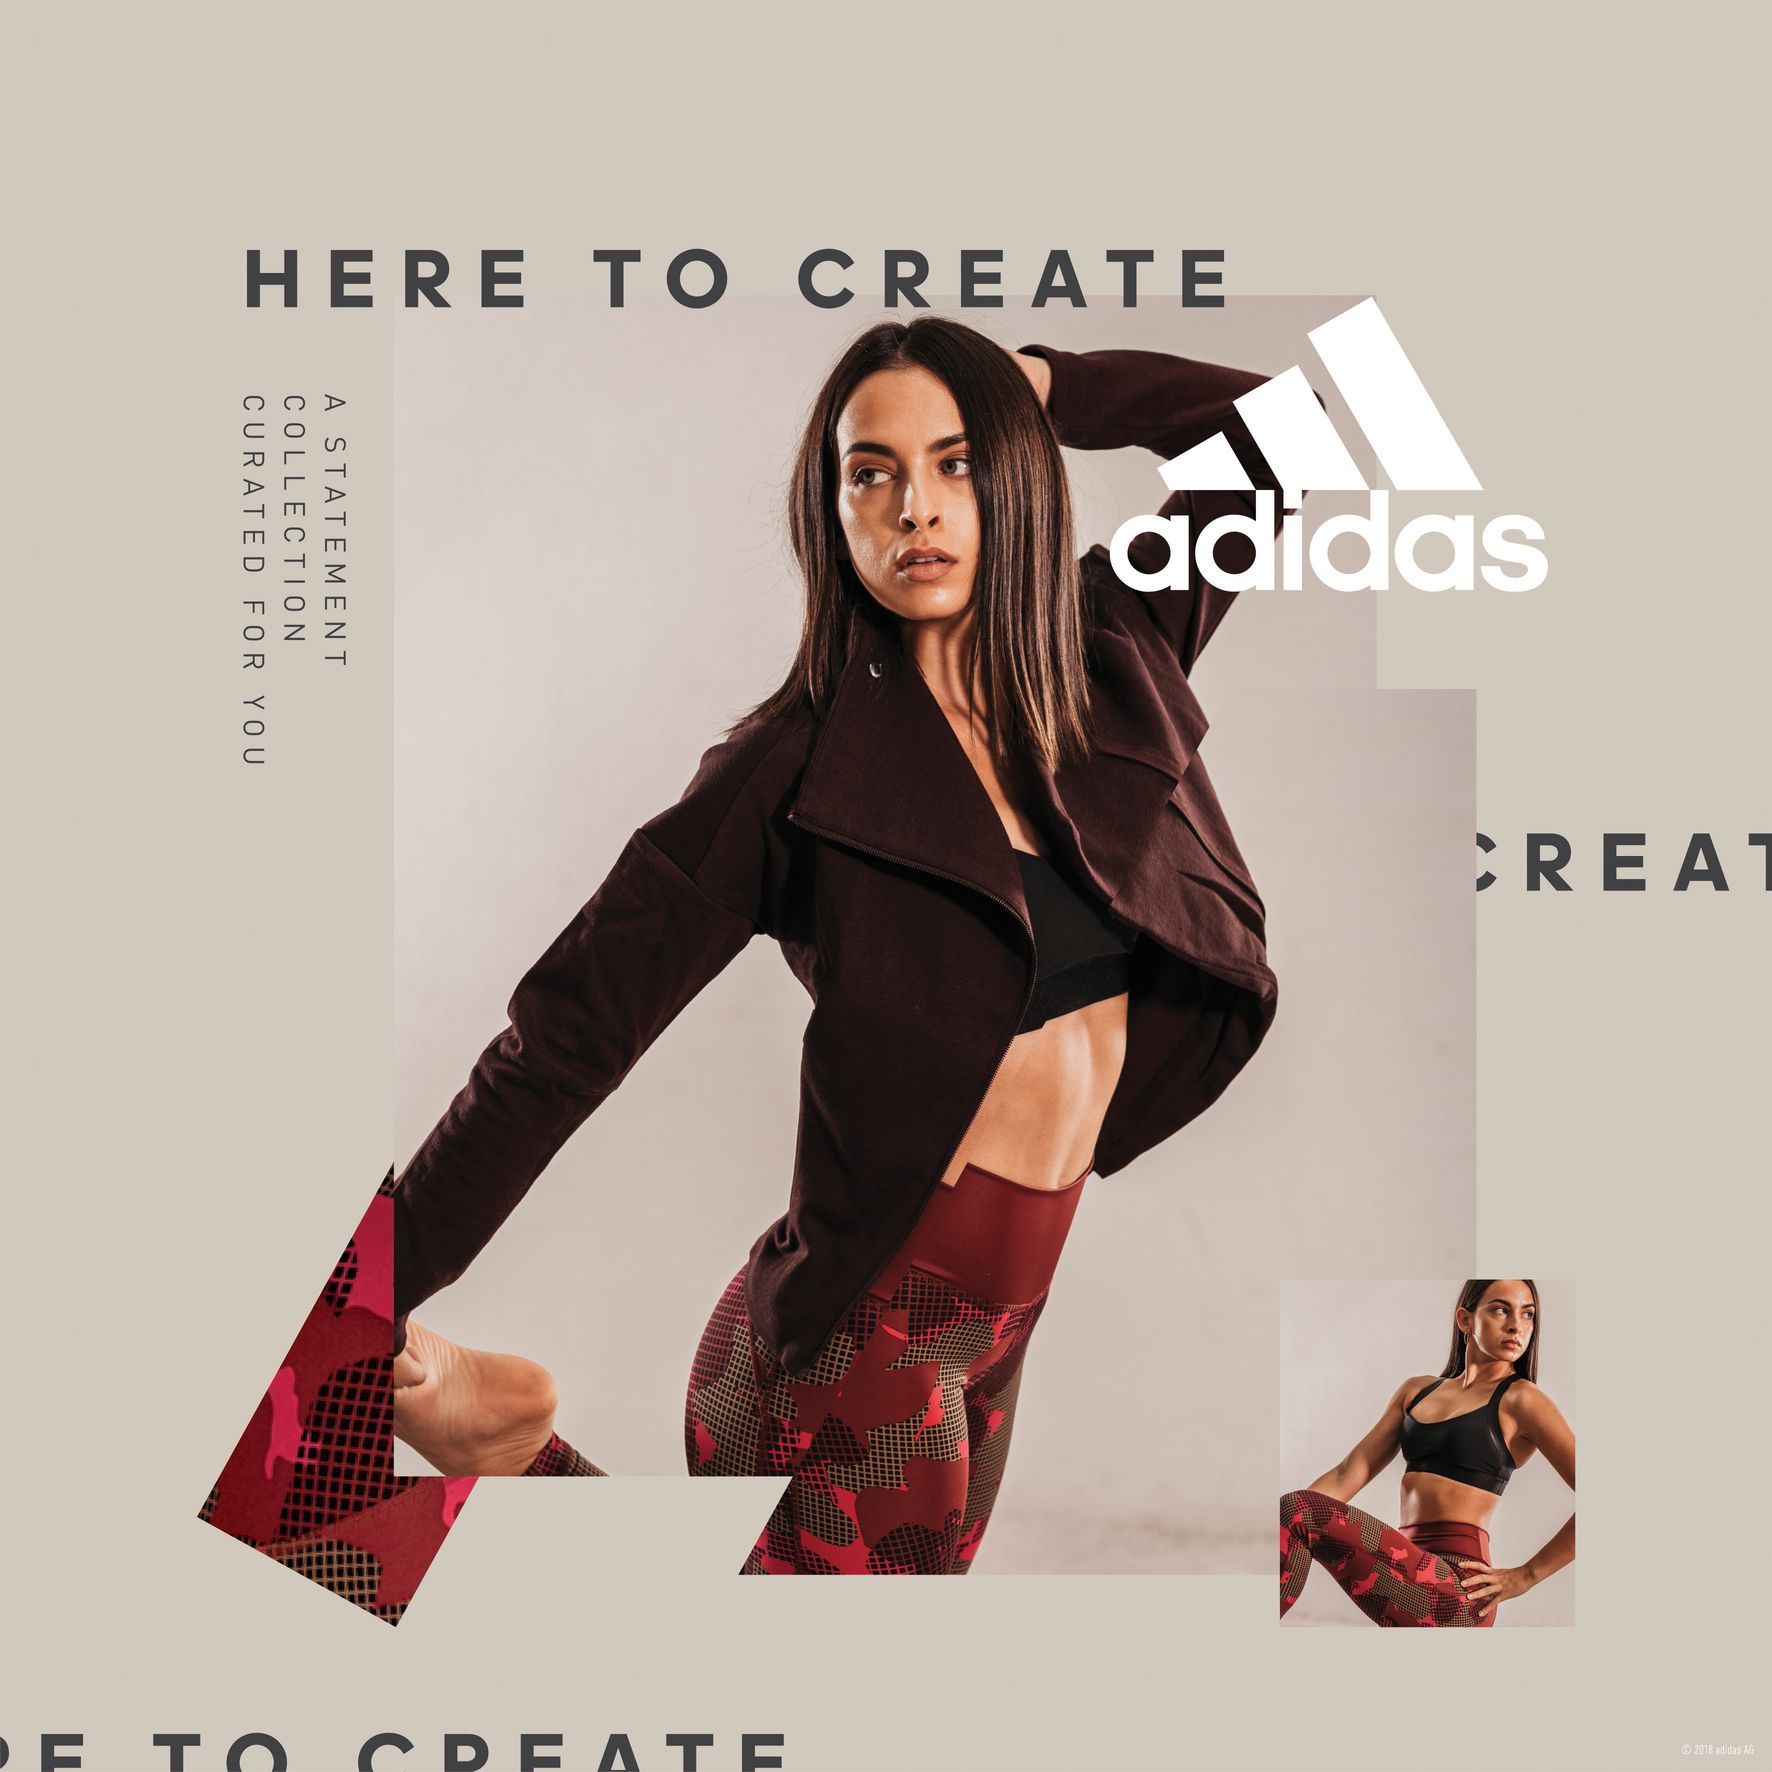 Adidas Women Statement Collection - Anastasia Marinakou